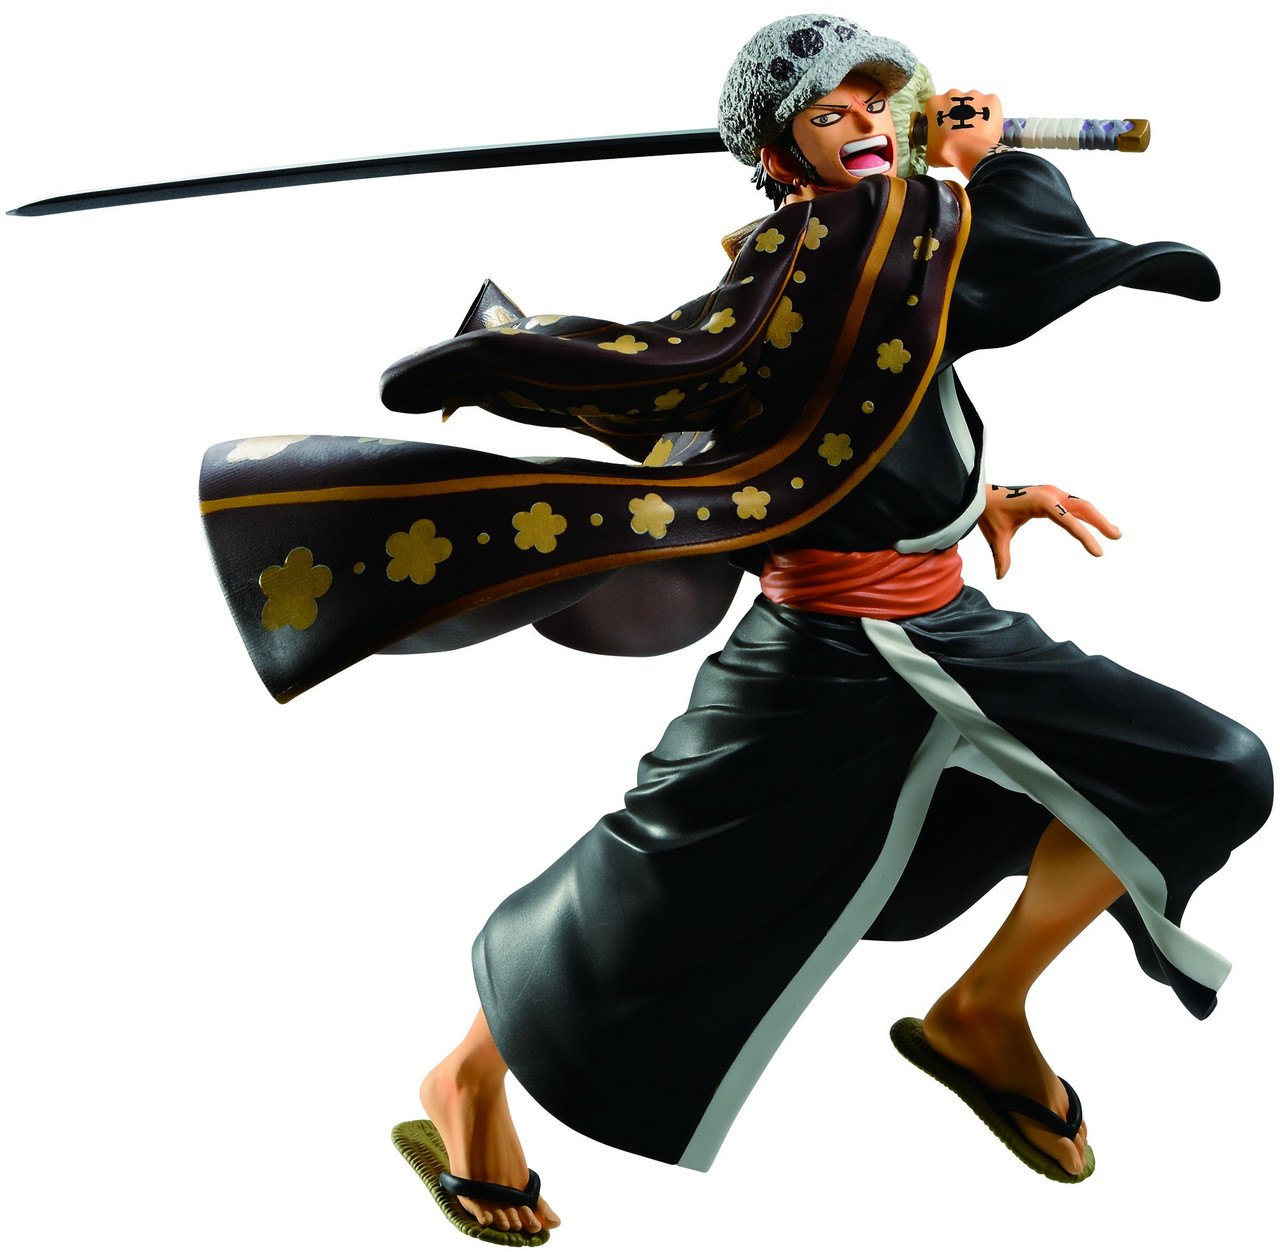 Japanese ONE PIECE KING OF ARTIST Ver Character TRAFALGAR LAW Collectable Figure